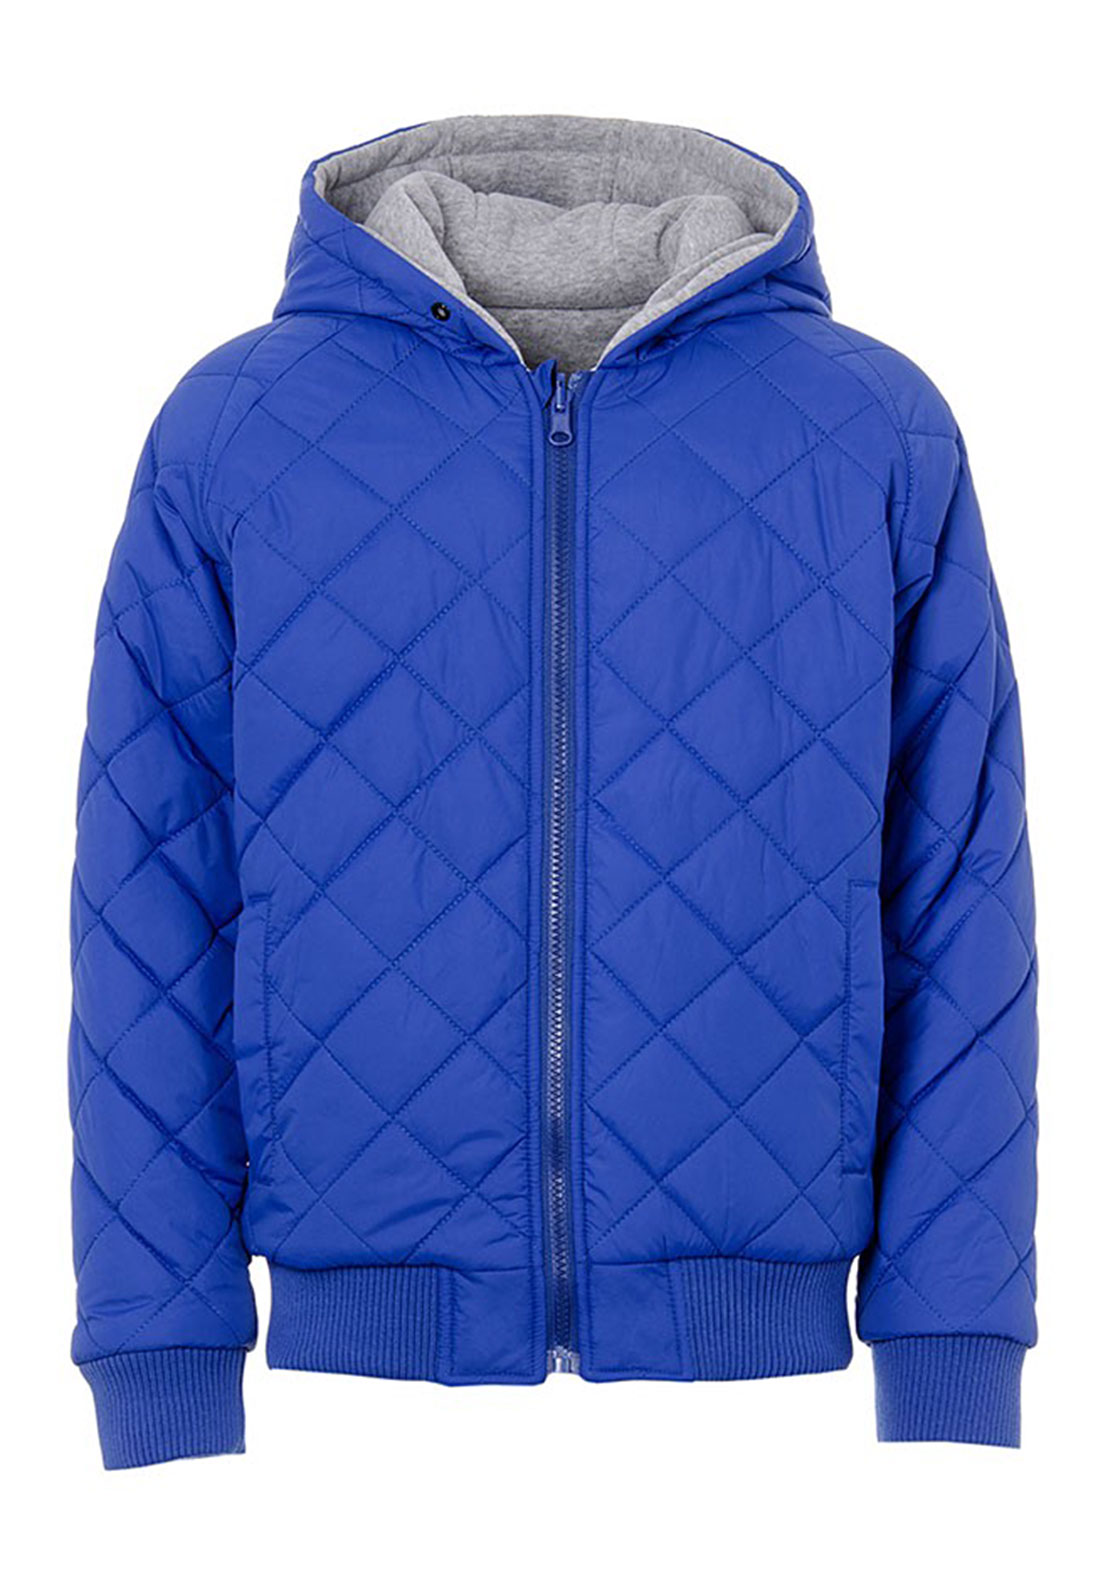 Tiffosi Boys Malcon Reversible Quilted Jacket, Blue